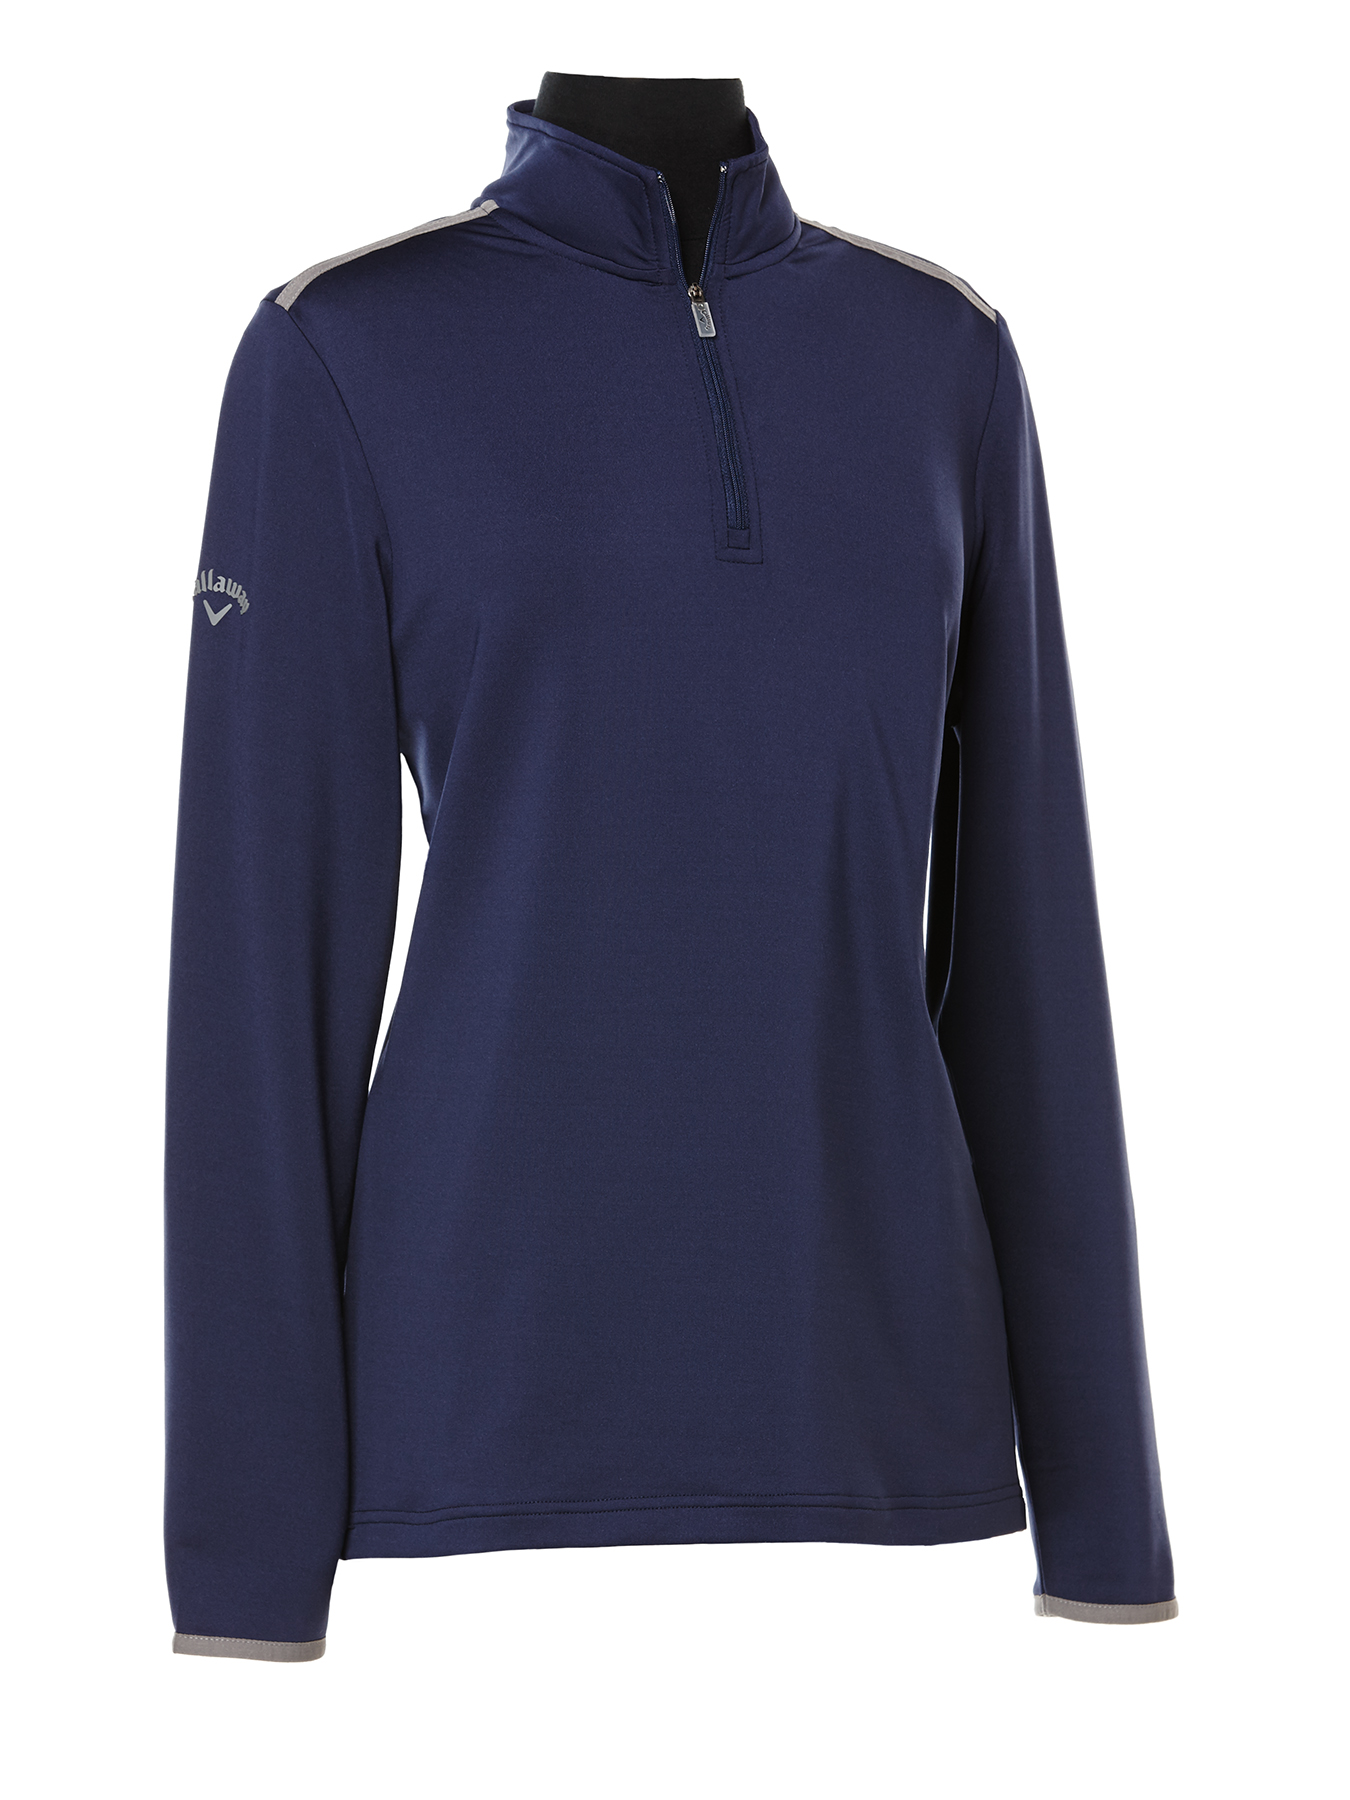 click to view Peacoat Navy/ Quiet Shade